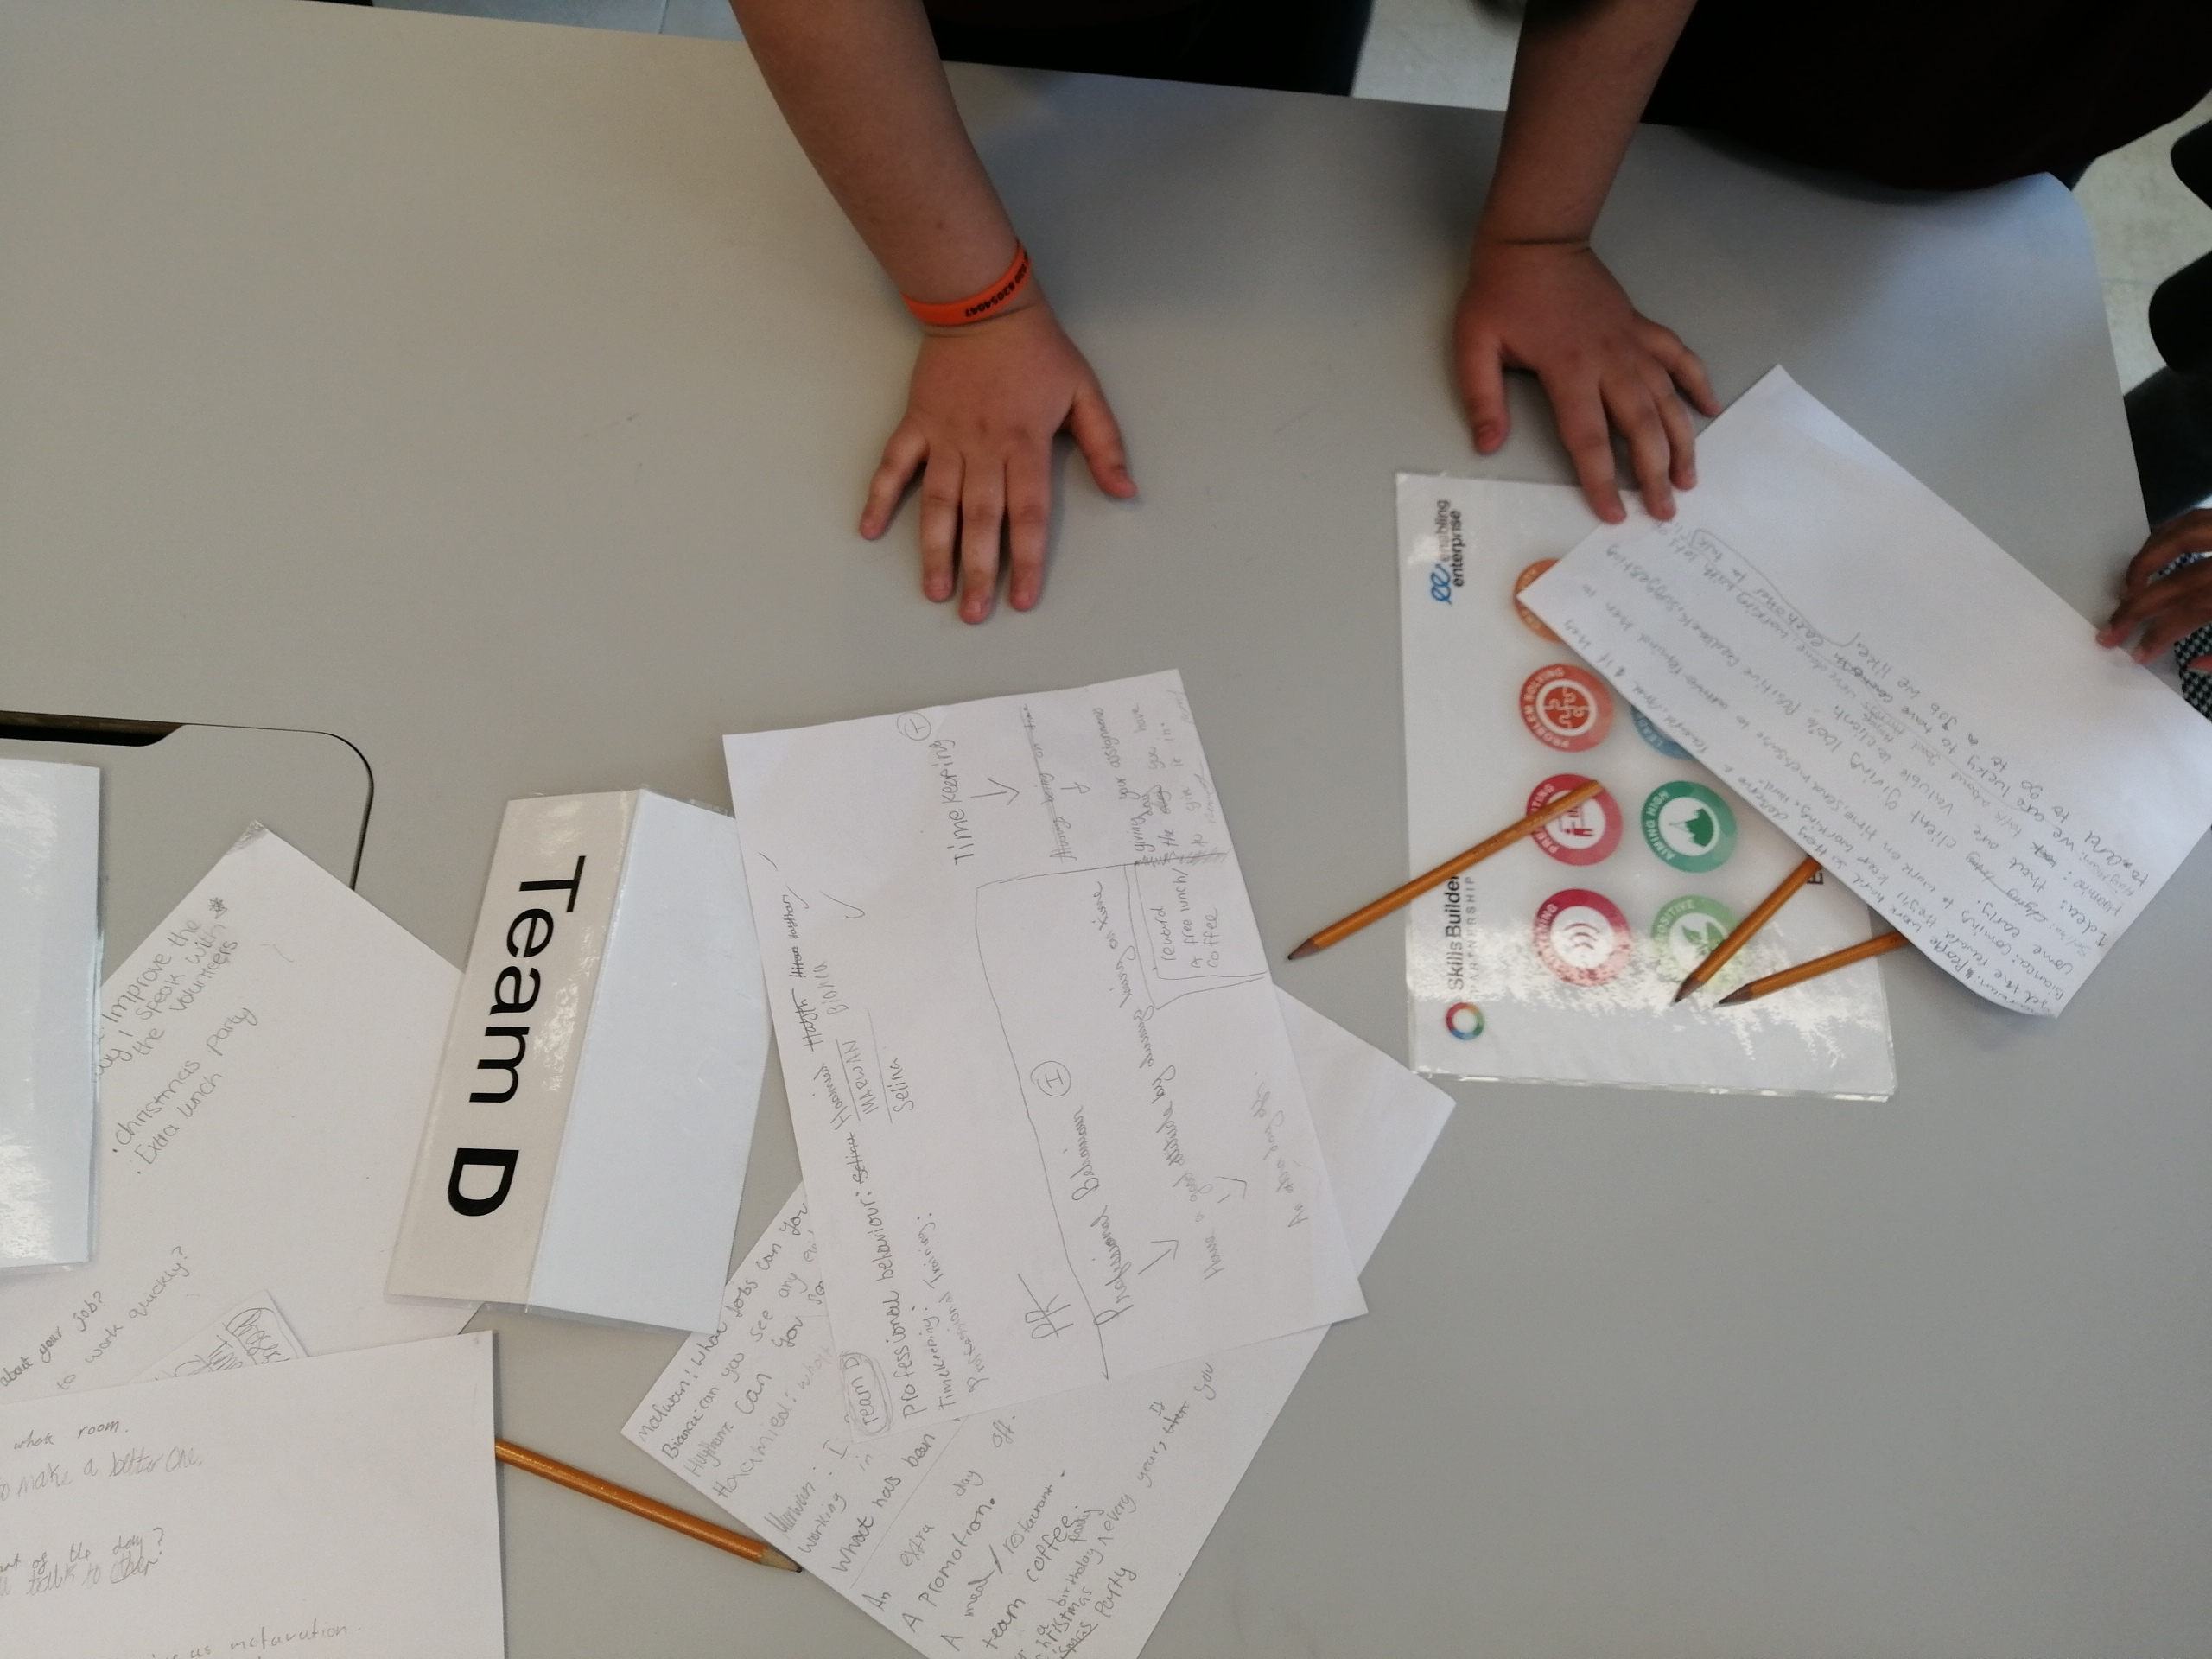 Teamwork and Aiming High skills combine as students design rewards schemes.